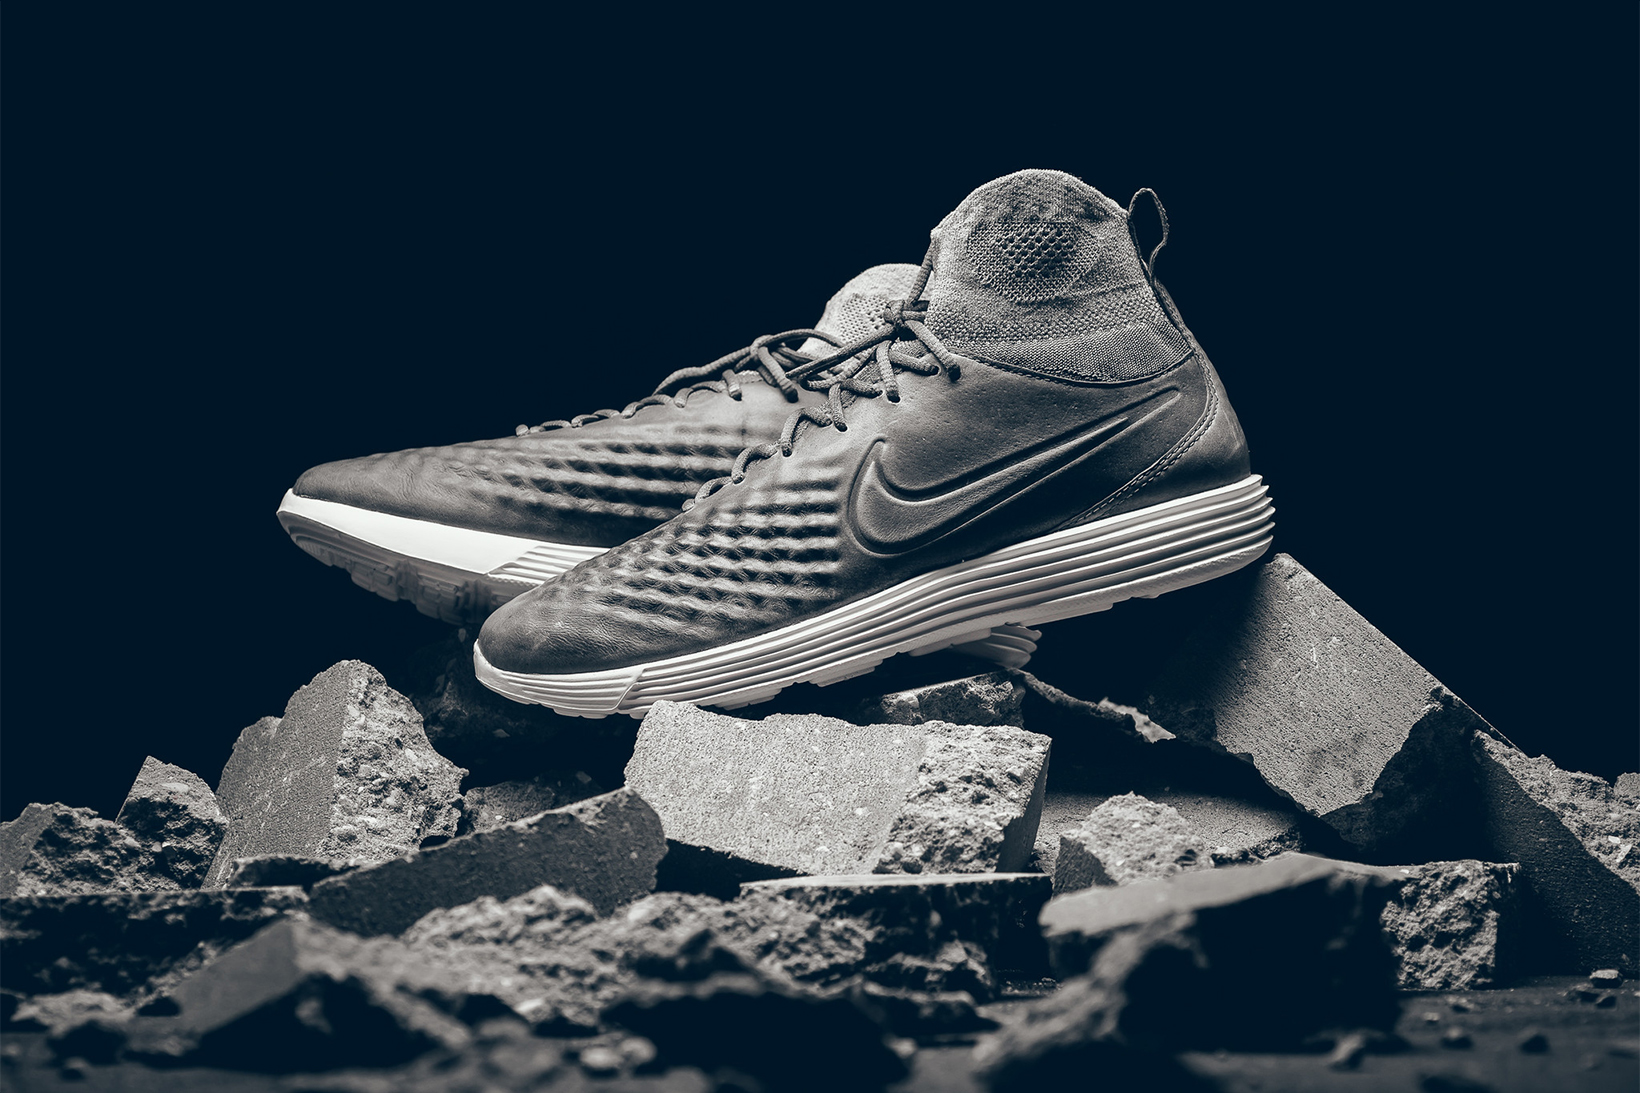 Nike Brings Back the Original Lunar Sole for the Lunar Magista II Flyknit